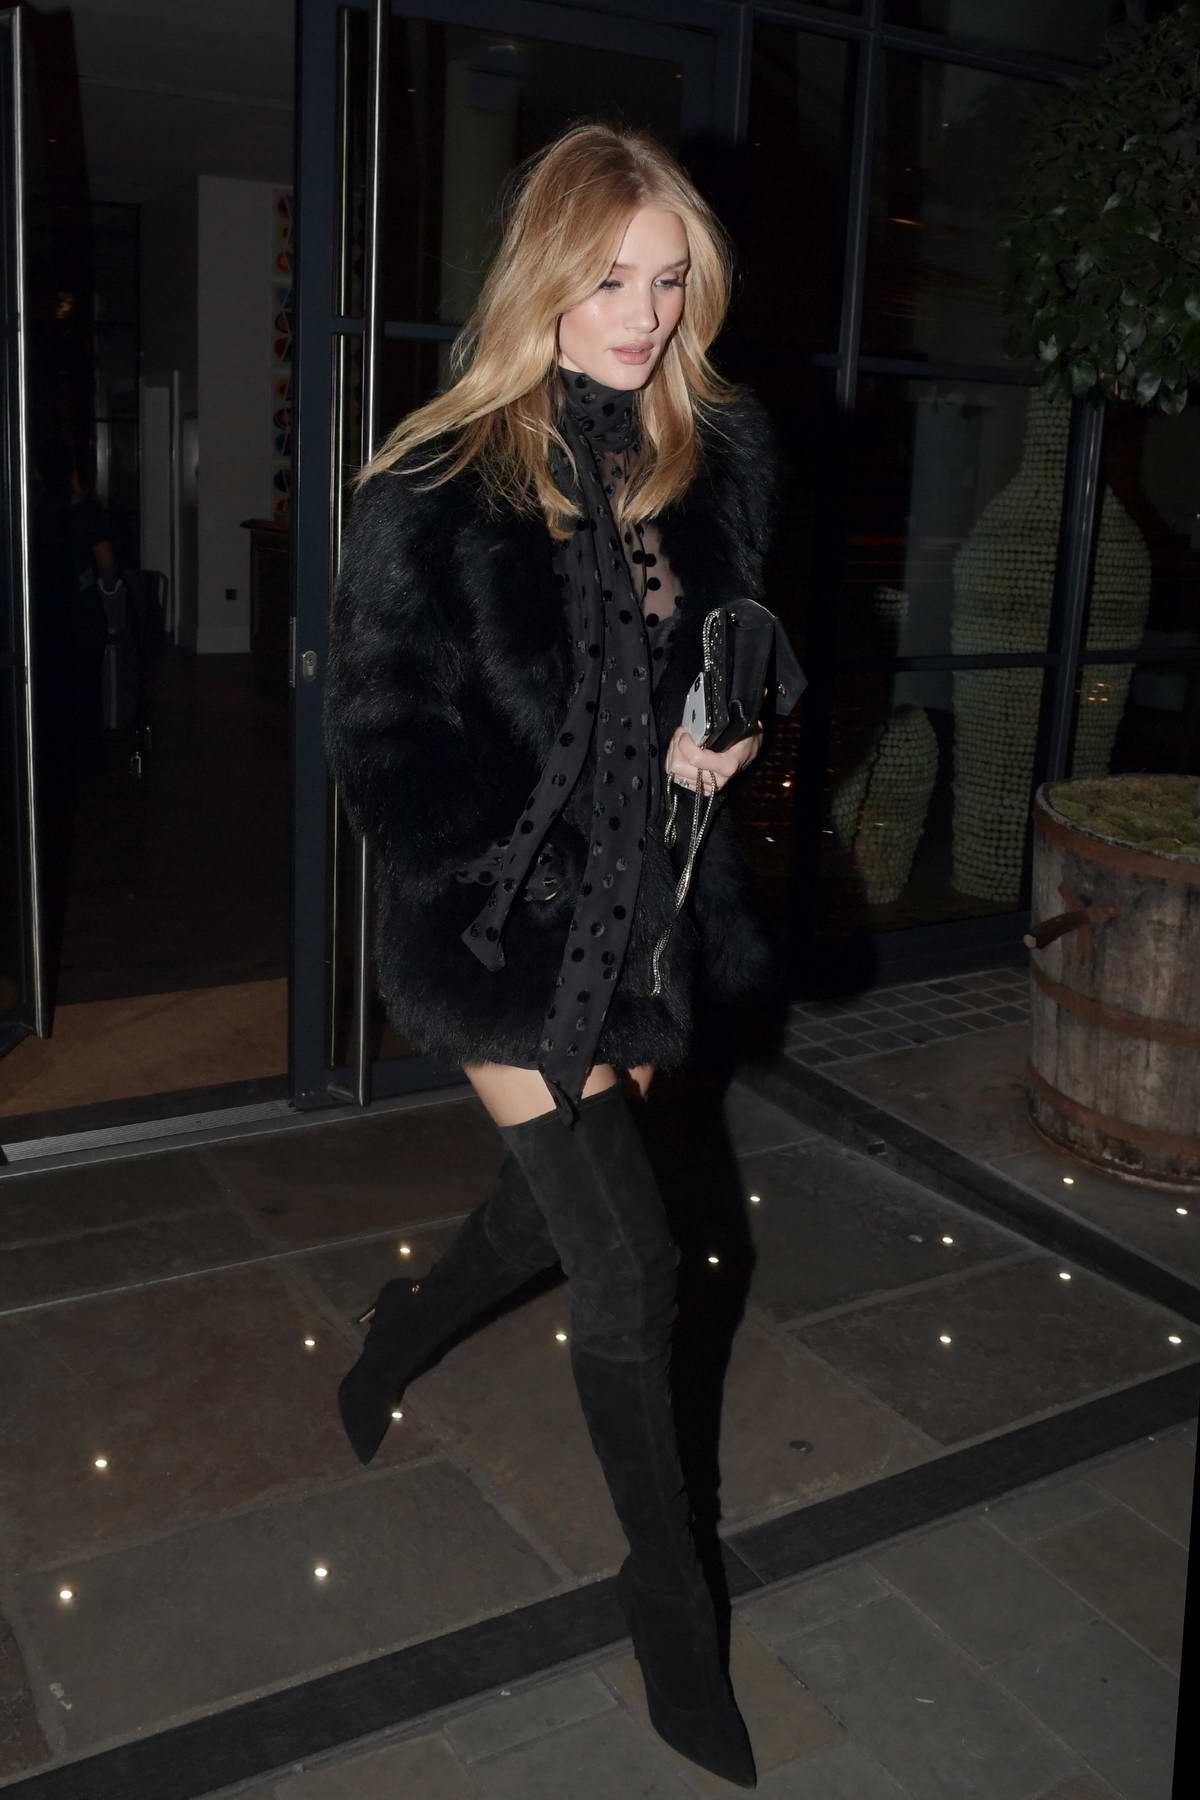 Rosie Huntington-Whiteley wearing a black fur coat with black thigh high boots while out to dinner with friends at Loulou's in London